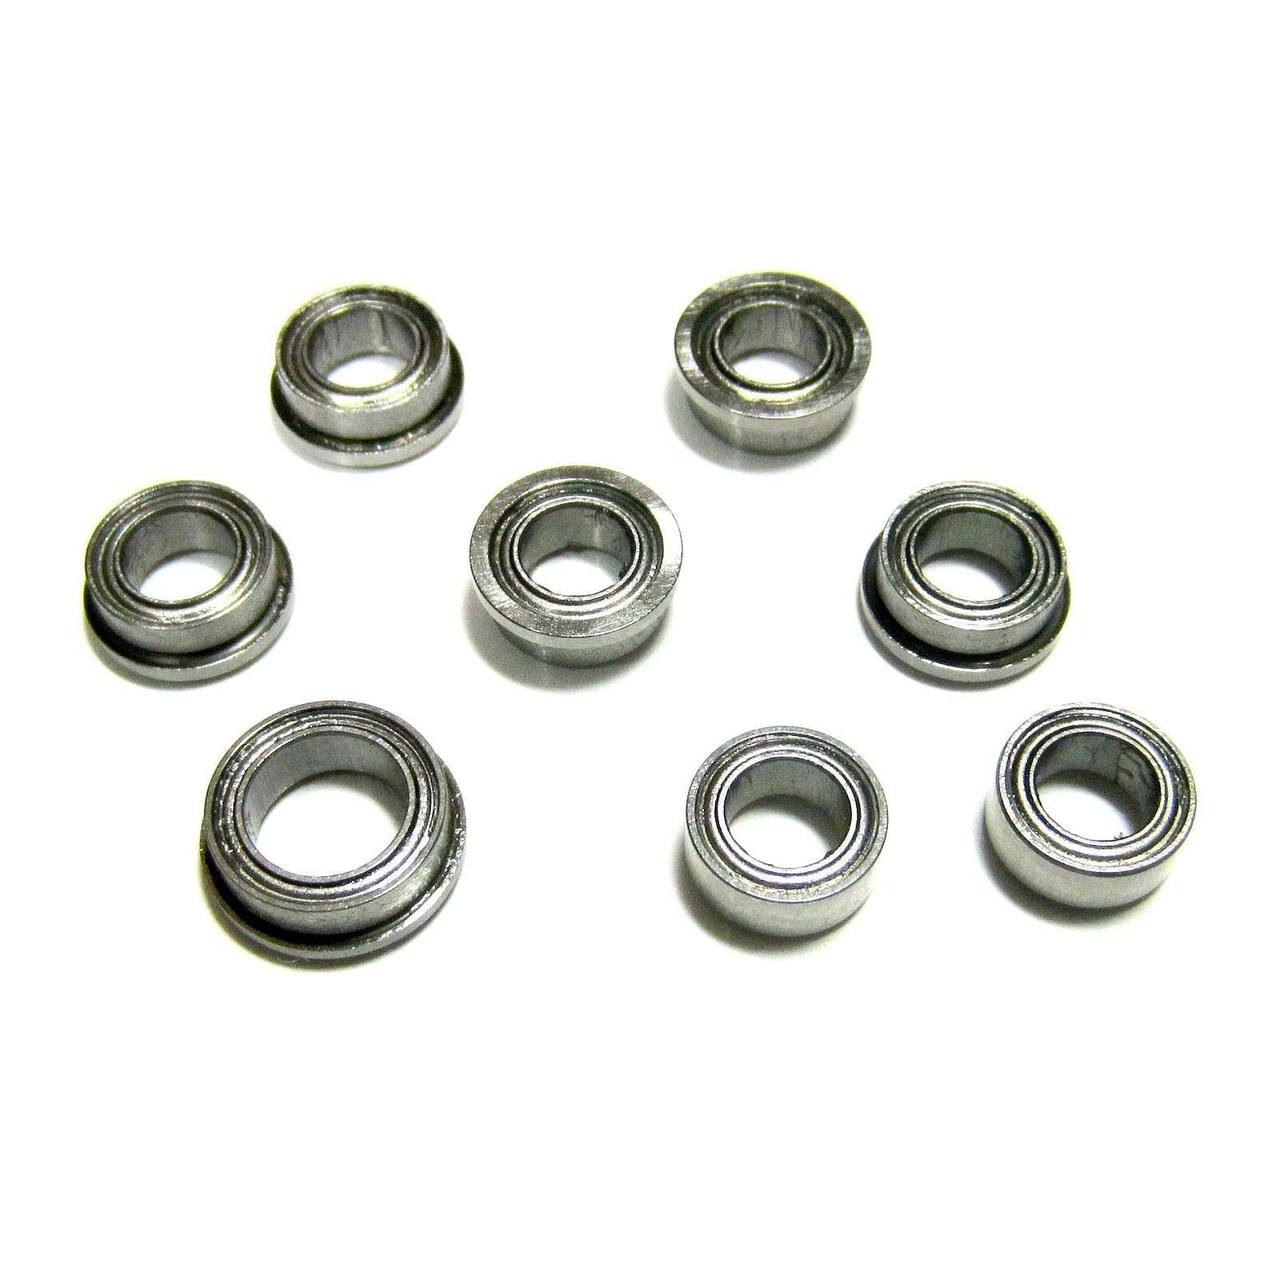 TRB RC Transmission Precision Ball Bearing Kit (8) Associated RC10 Classic